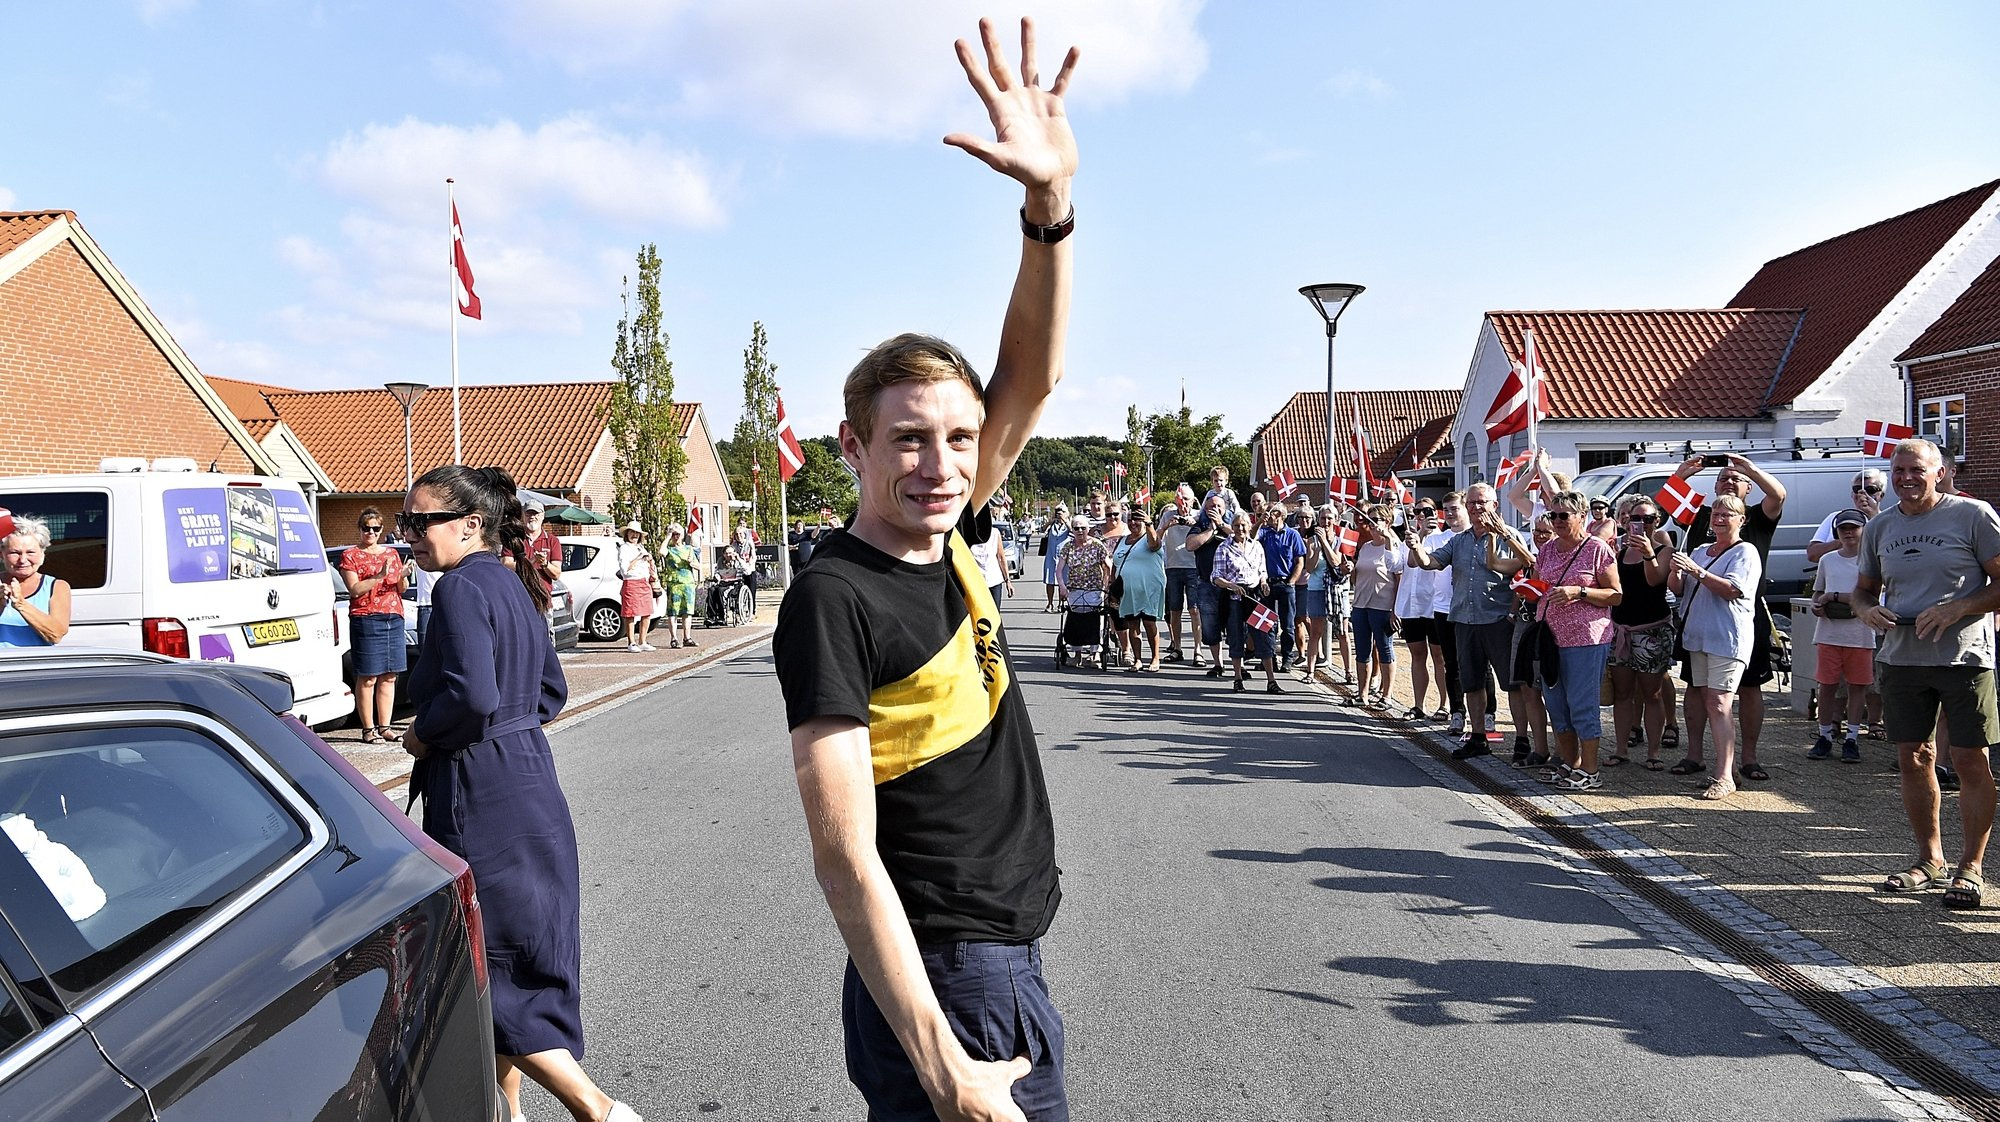 epa09360428 Jonas Vingegaard waves to the crowd in his home town of Glyngoere in Denmark, 23 July 2021. Jumbo Visma's Danish rider, Jonas Vingegaard is celebrated by family, friends and fans in his home town of Glyngoere in Denmark after his overall second place in this year's Tour de France. A large part of the 1.500 inhabitants greeted Jonas Vingegaard with cheers and flags.  EPA/ERNST VAN NORDE  DENMARK OUT